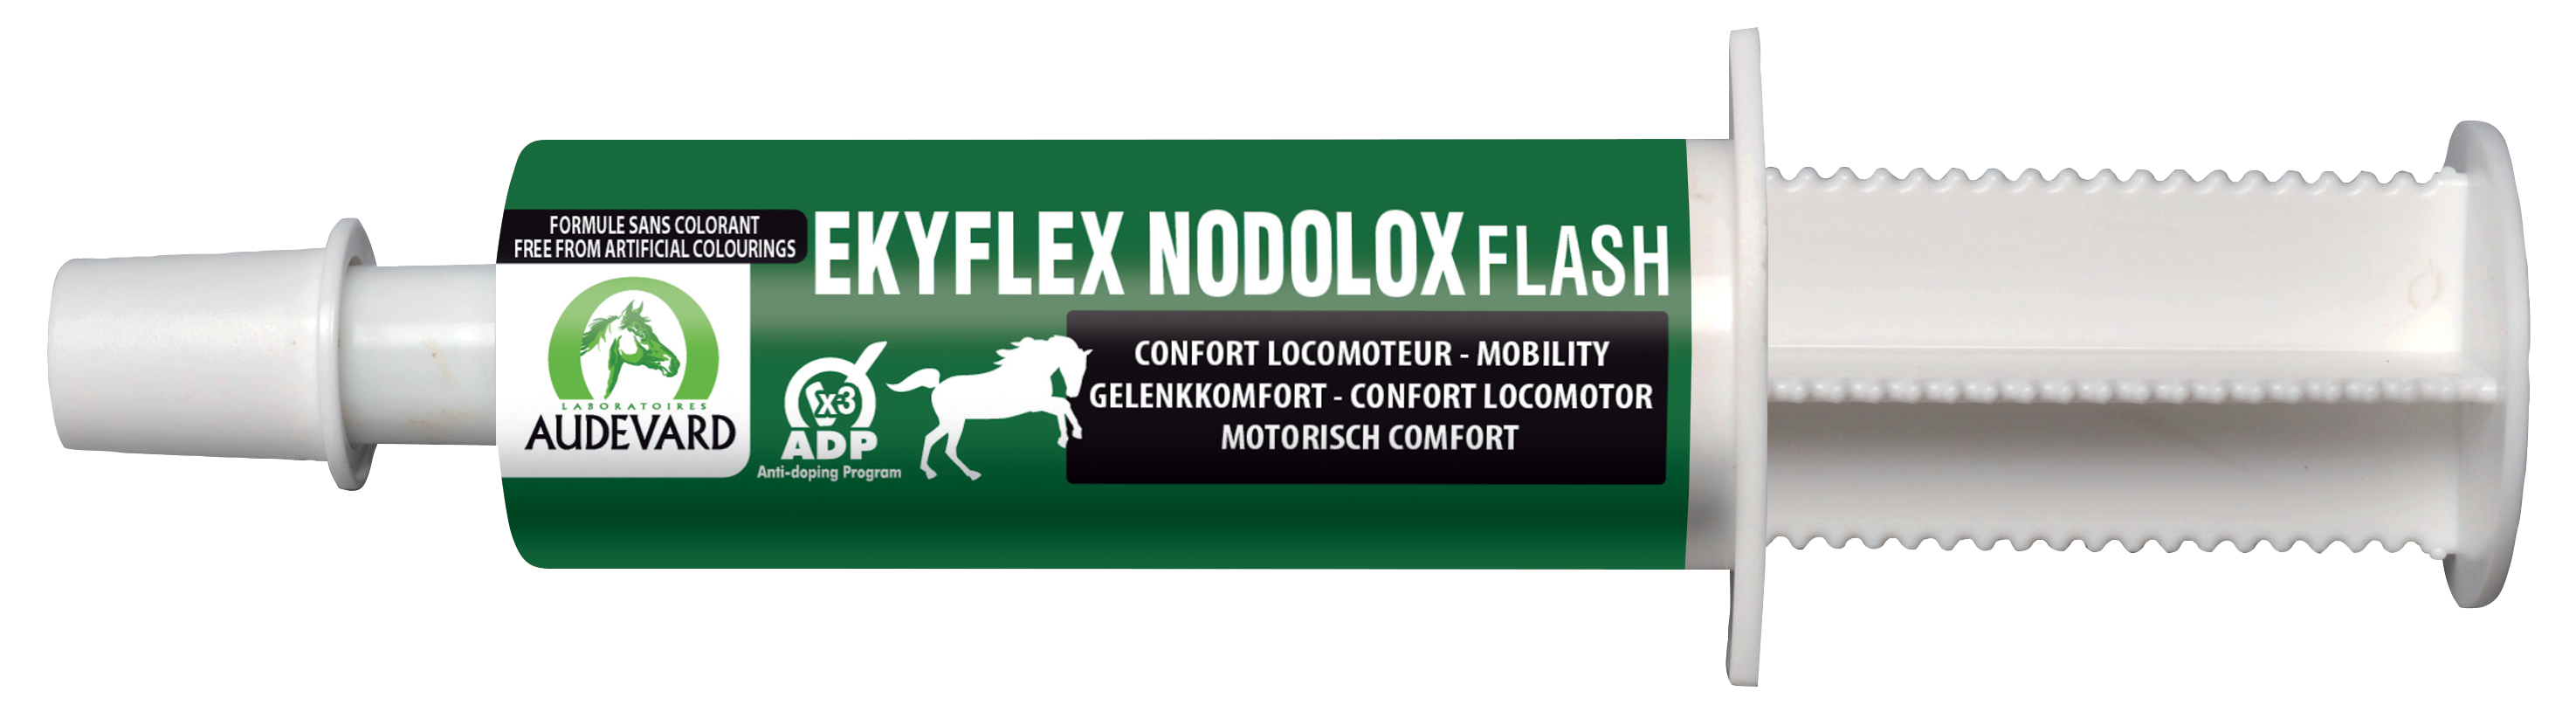 Audevard Ekyflex Nodolox Flash 60ml